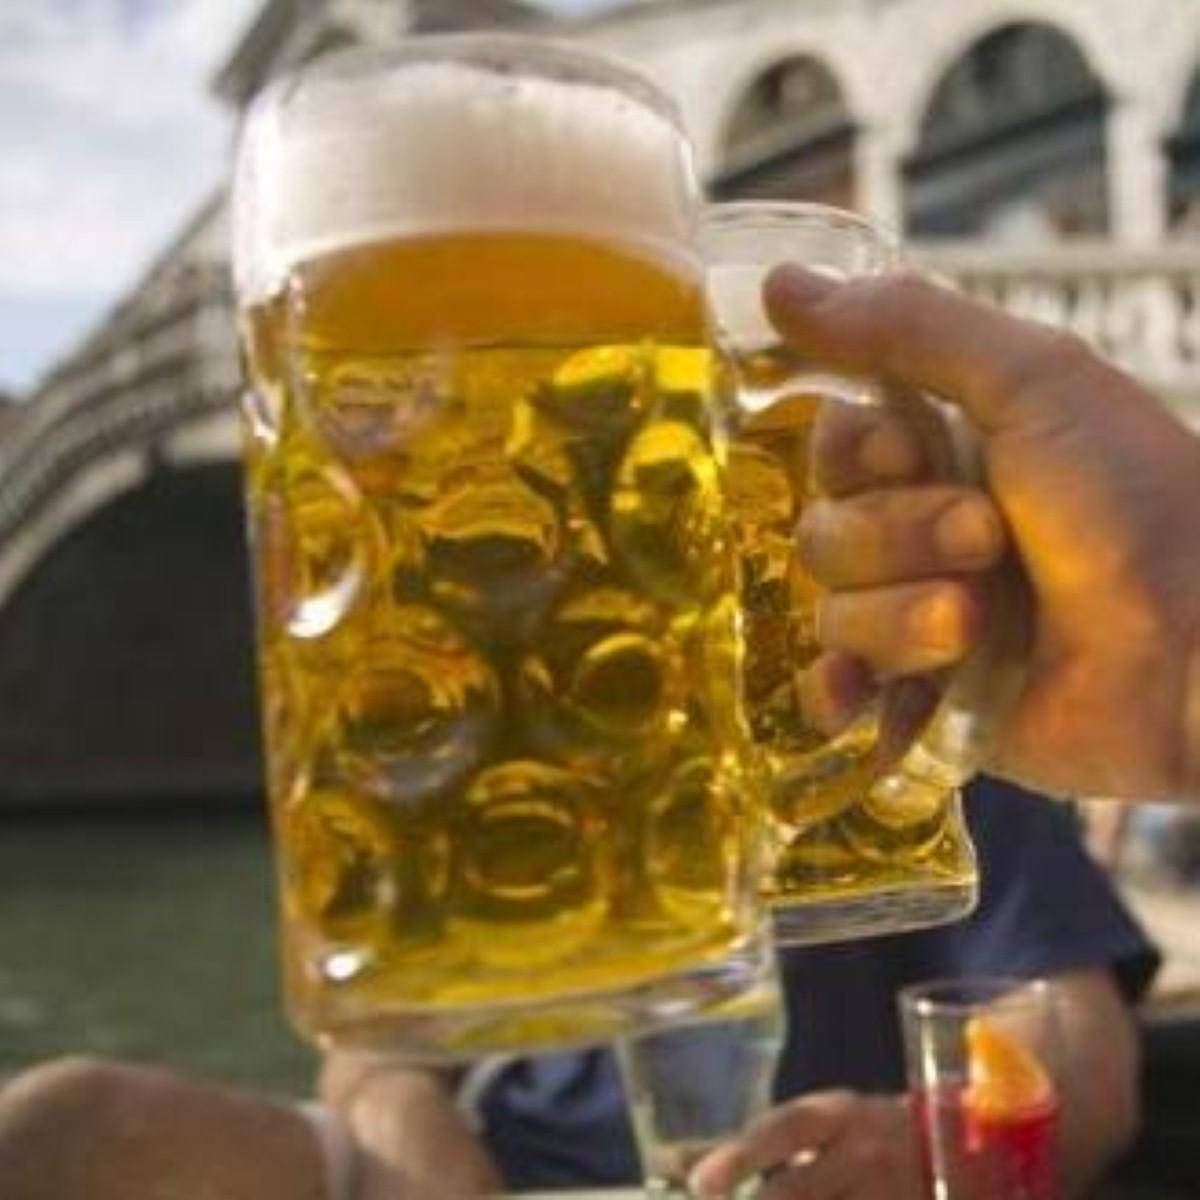 Alcohol consumption 'staves off dementia'